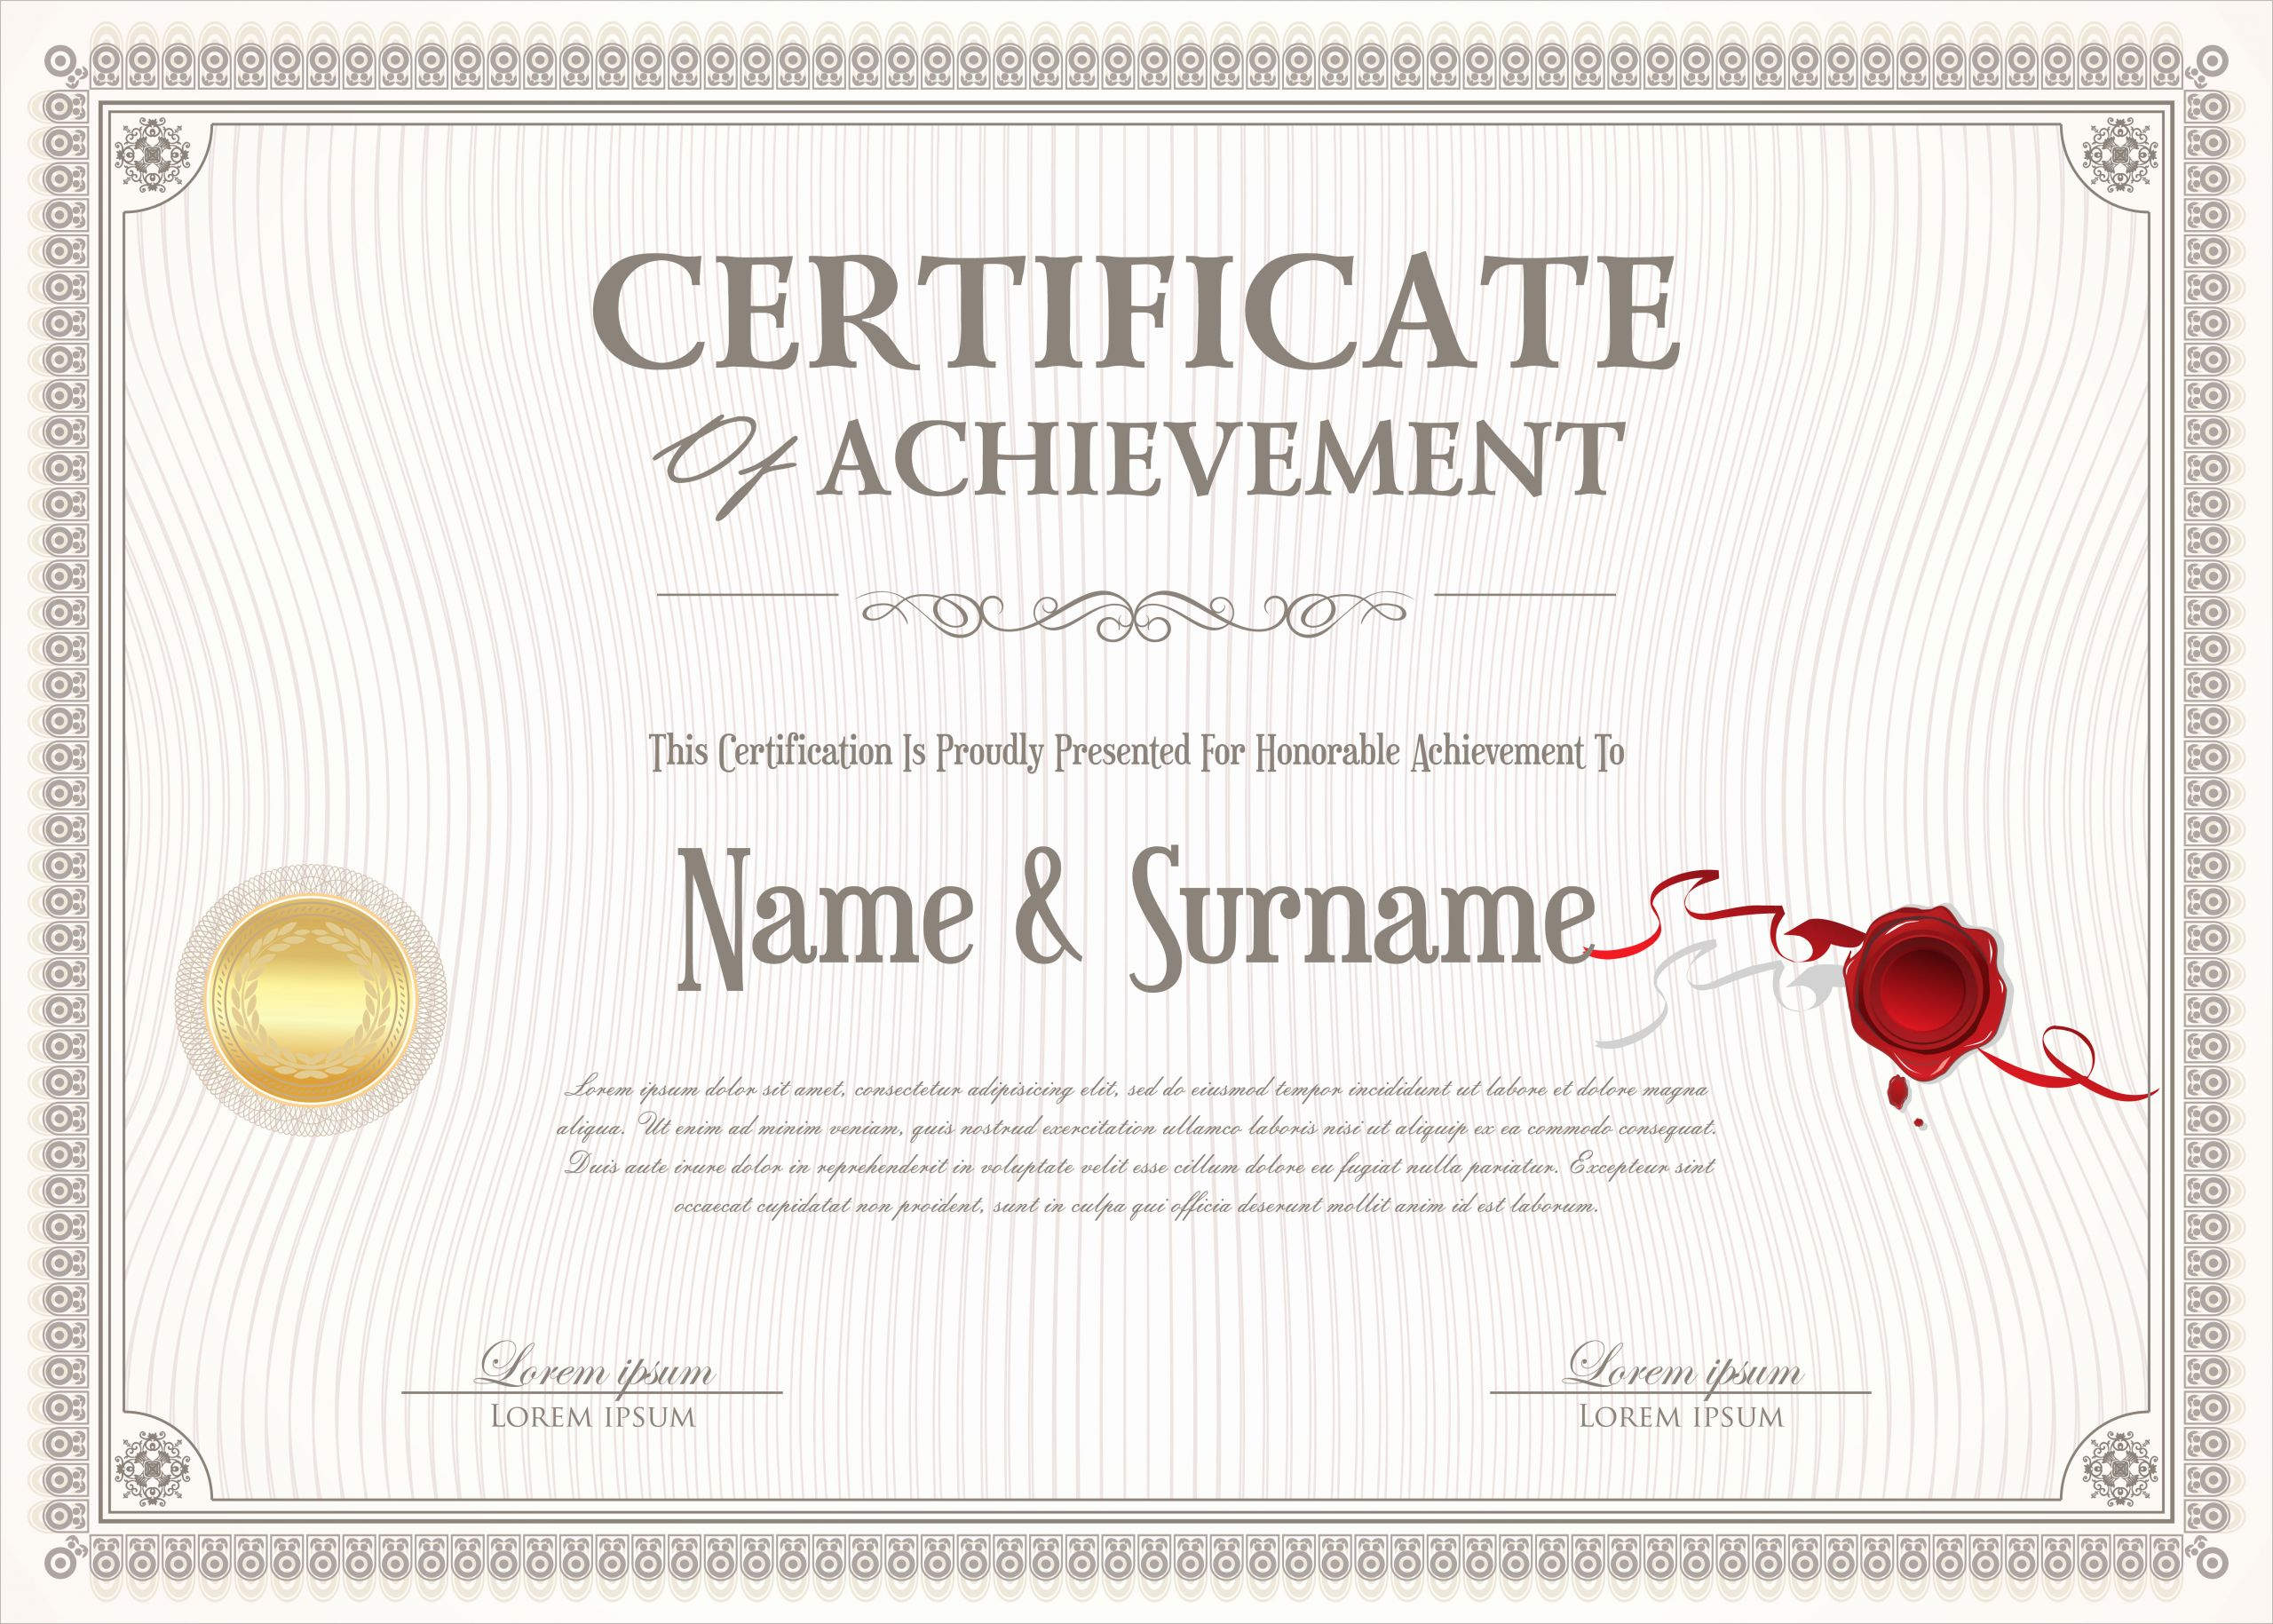 Certificate Of Accomplishment Template Elegant Certificate Of Achievement Retro Design Template